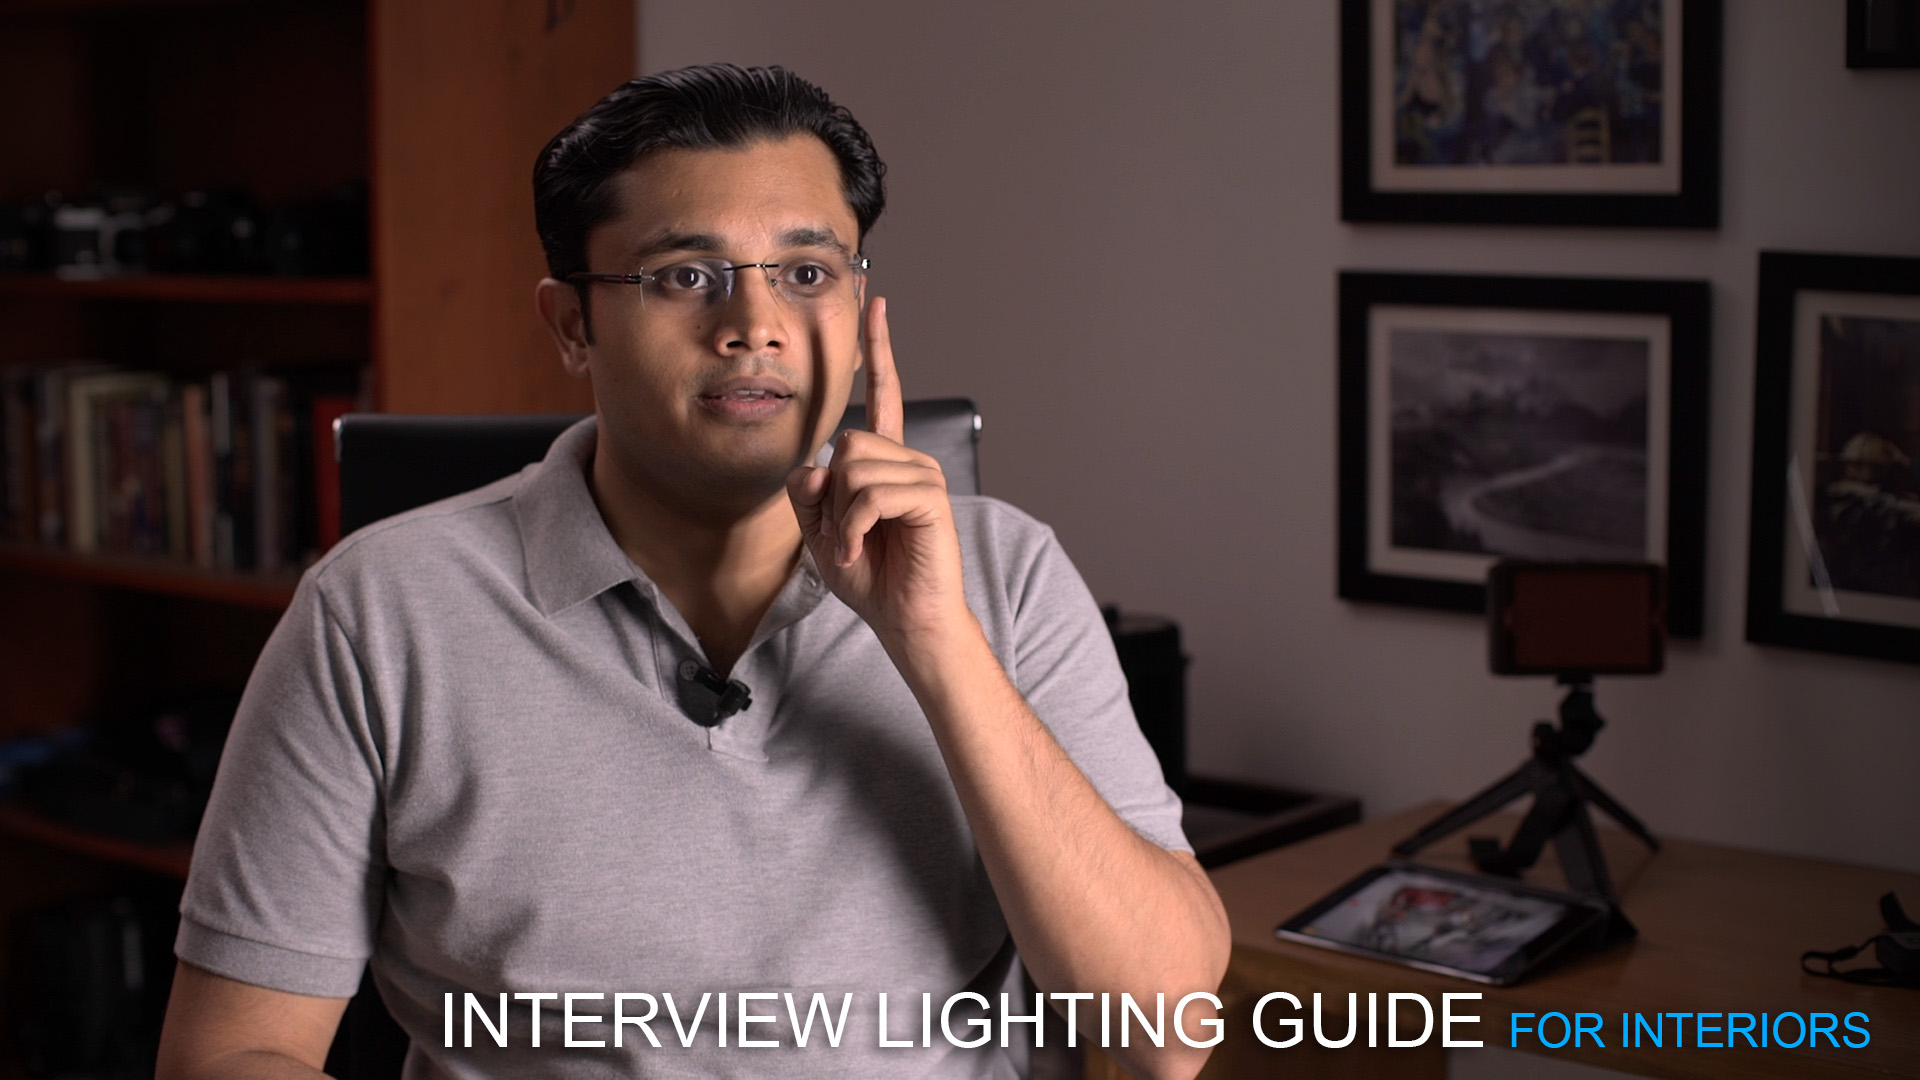 The Interview Lighting Guide for Interior Locations